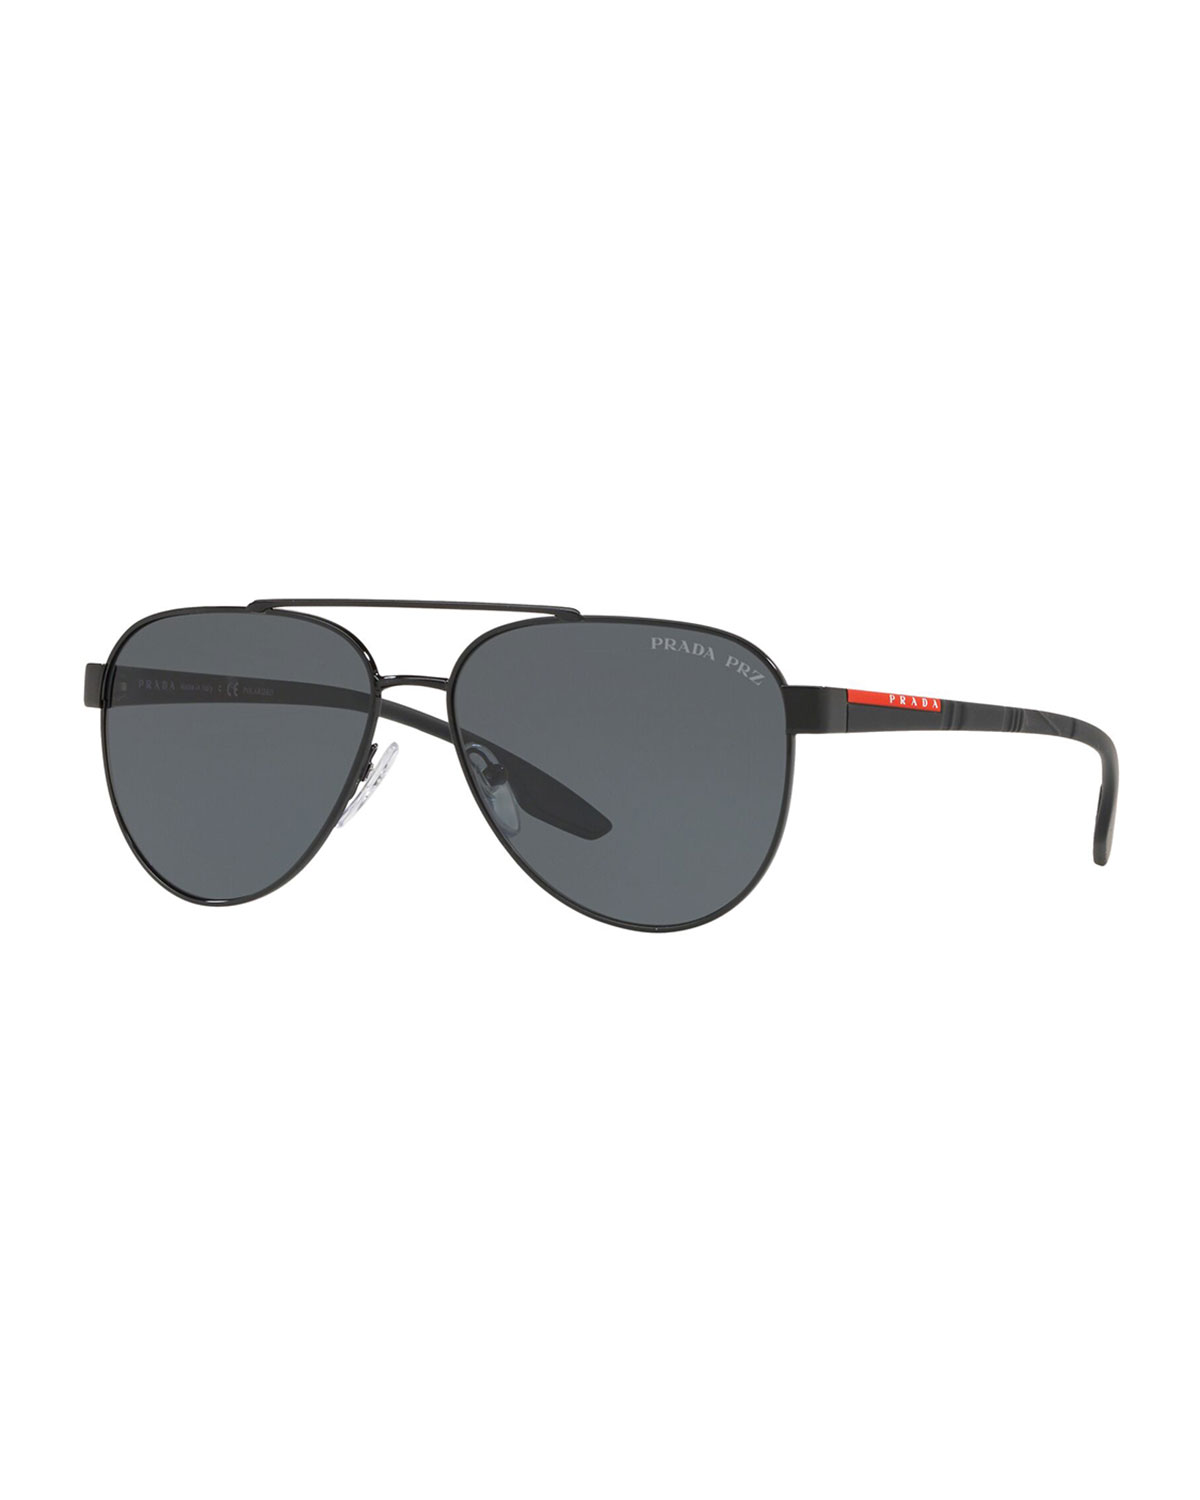 Men's Metal Aviator Sunglasses - Solid Lenses